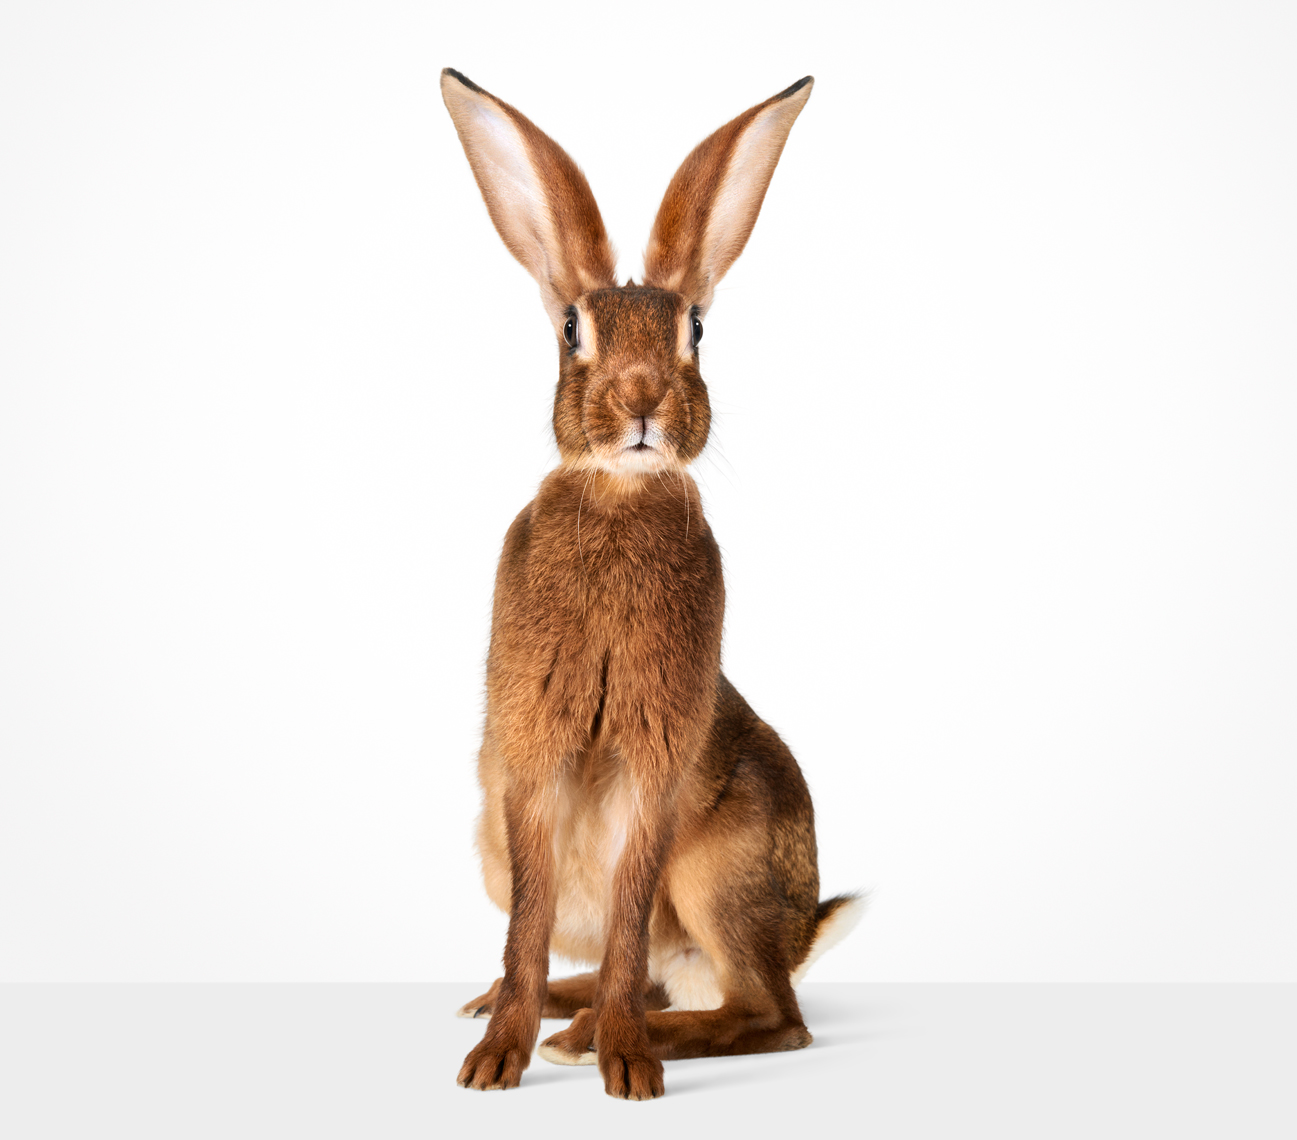 Hare standing up with erect ears